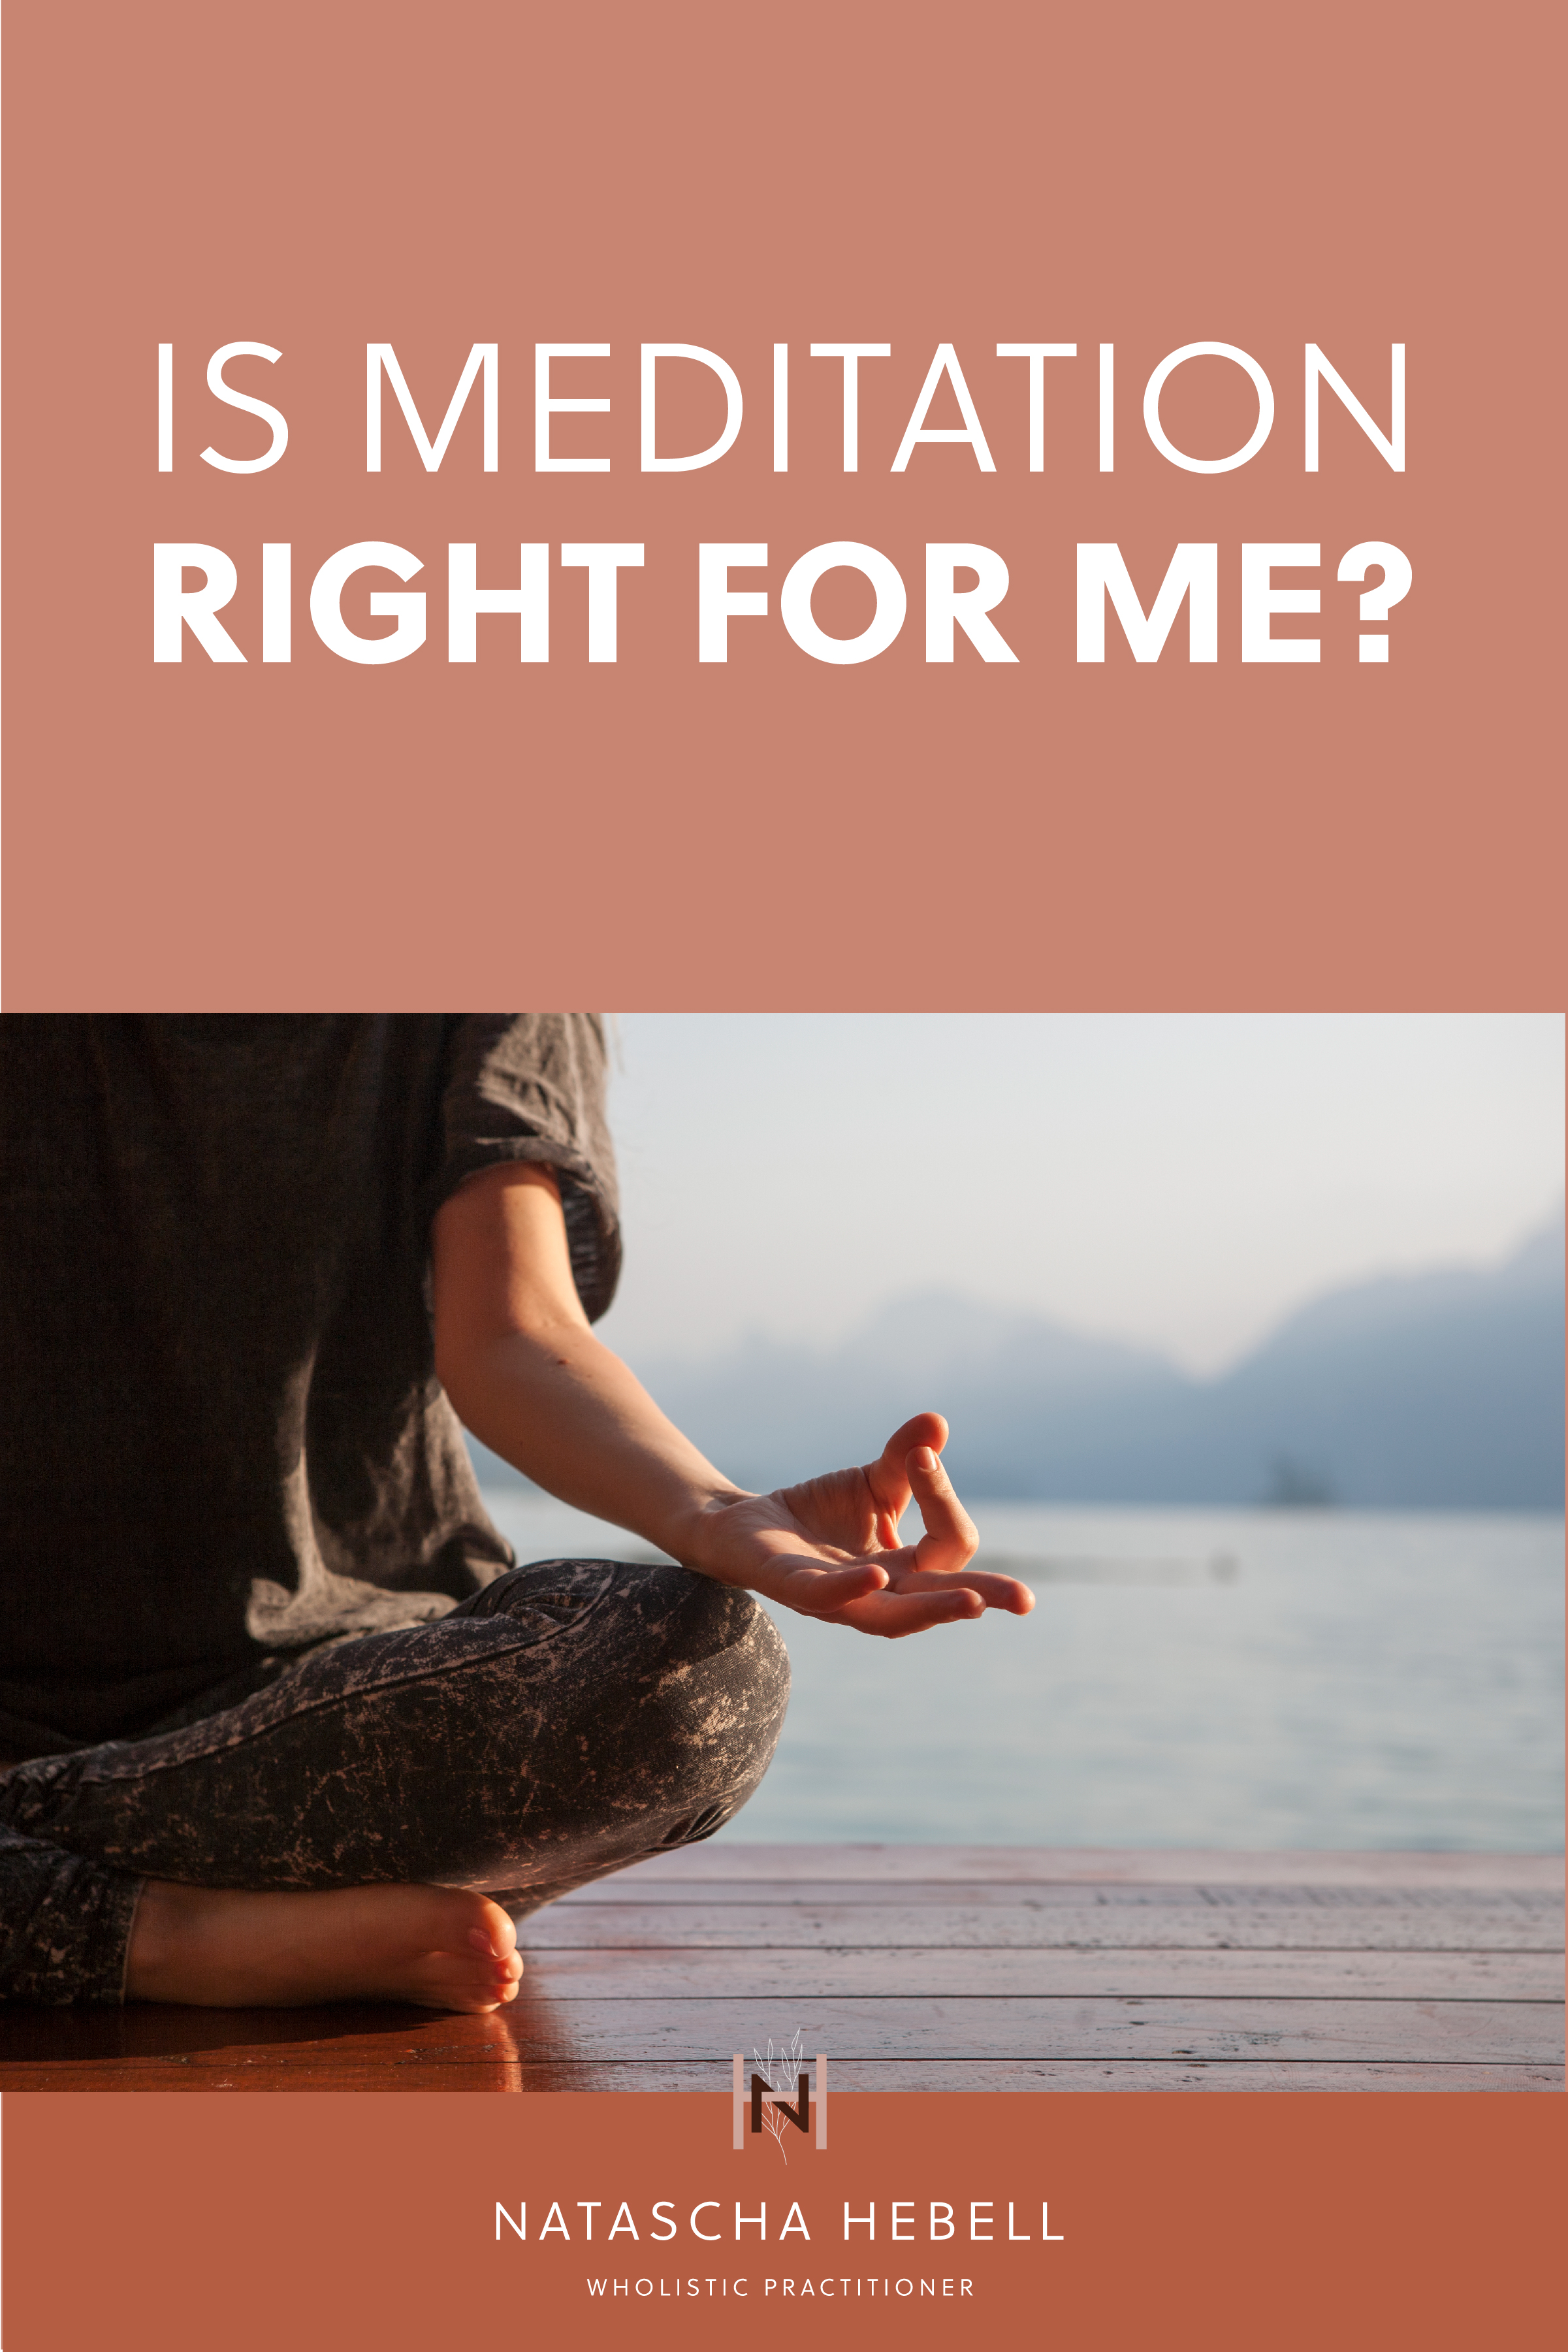 Is meditation right for me?  | Natascha Hebell, Wholistic Practitioner